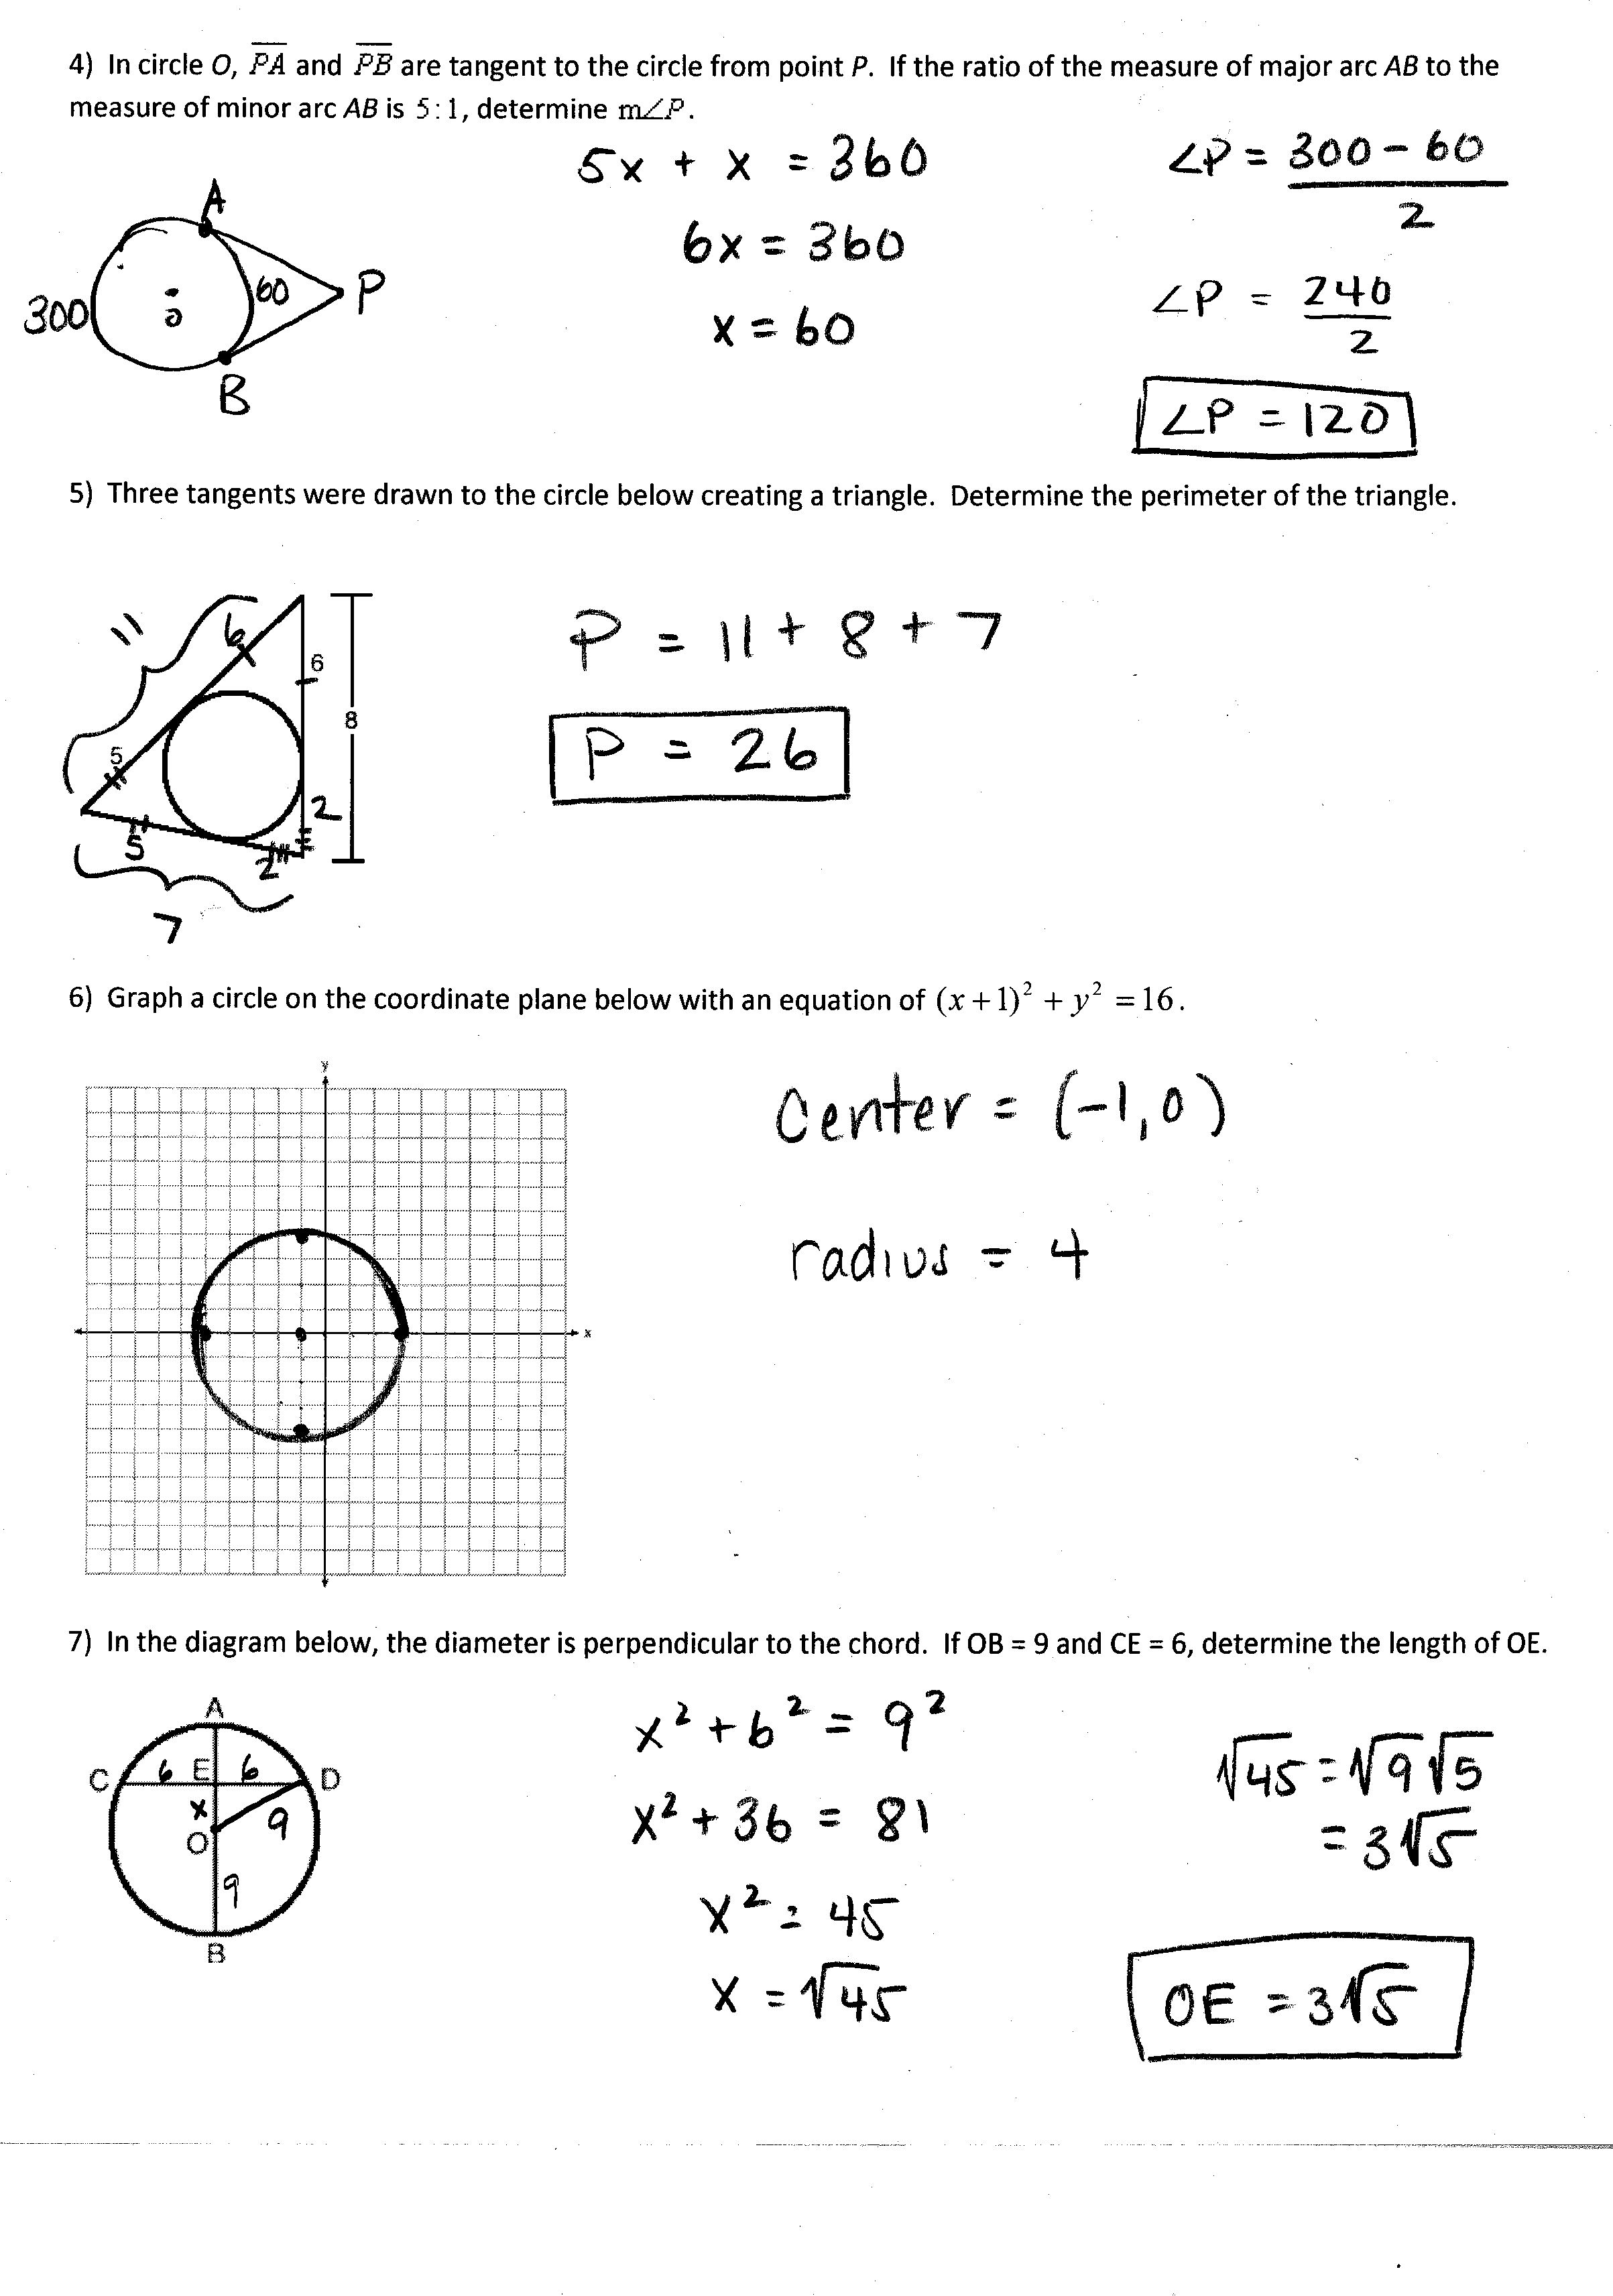 geometry homework geometry homework help geometry assignment help math homework help geometry formulas sheet google search